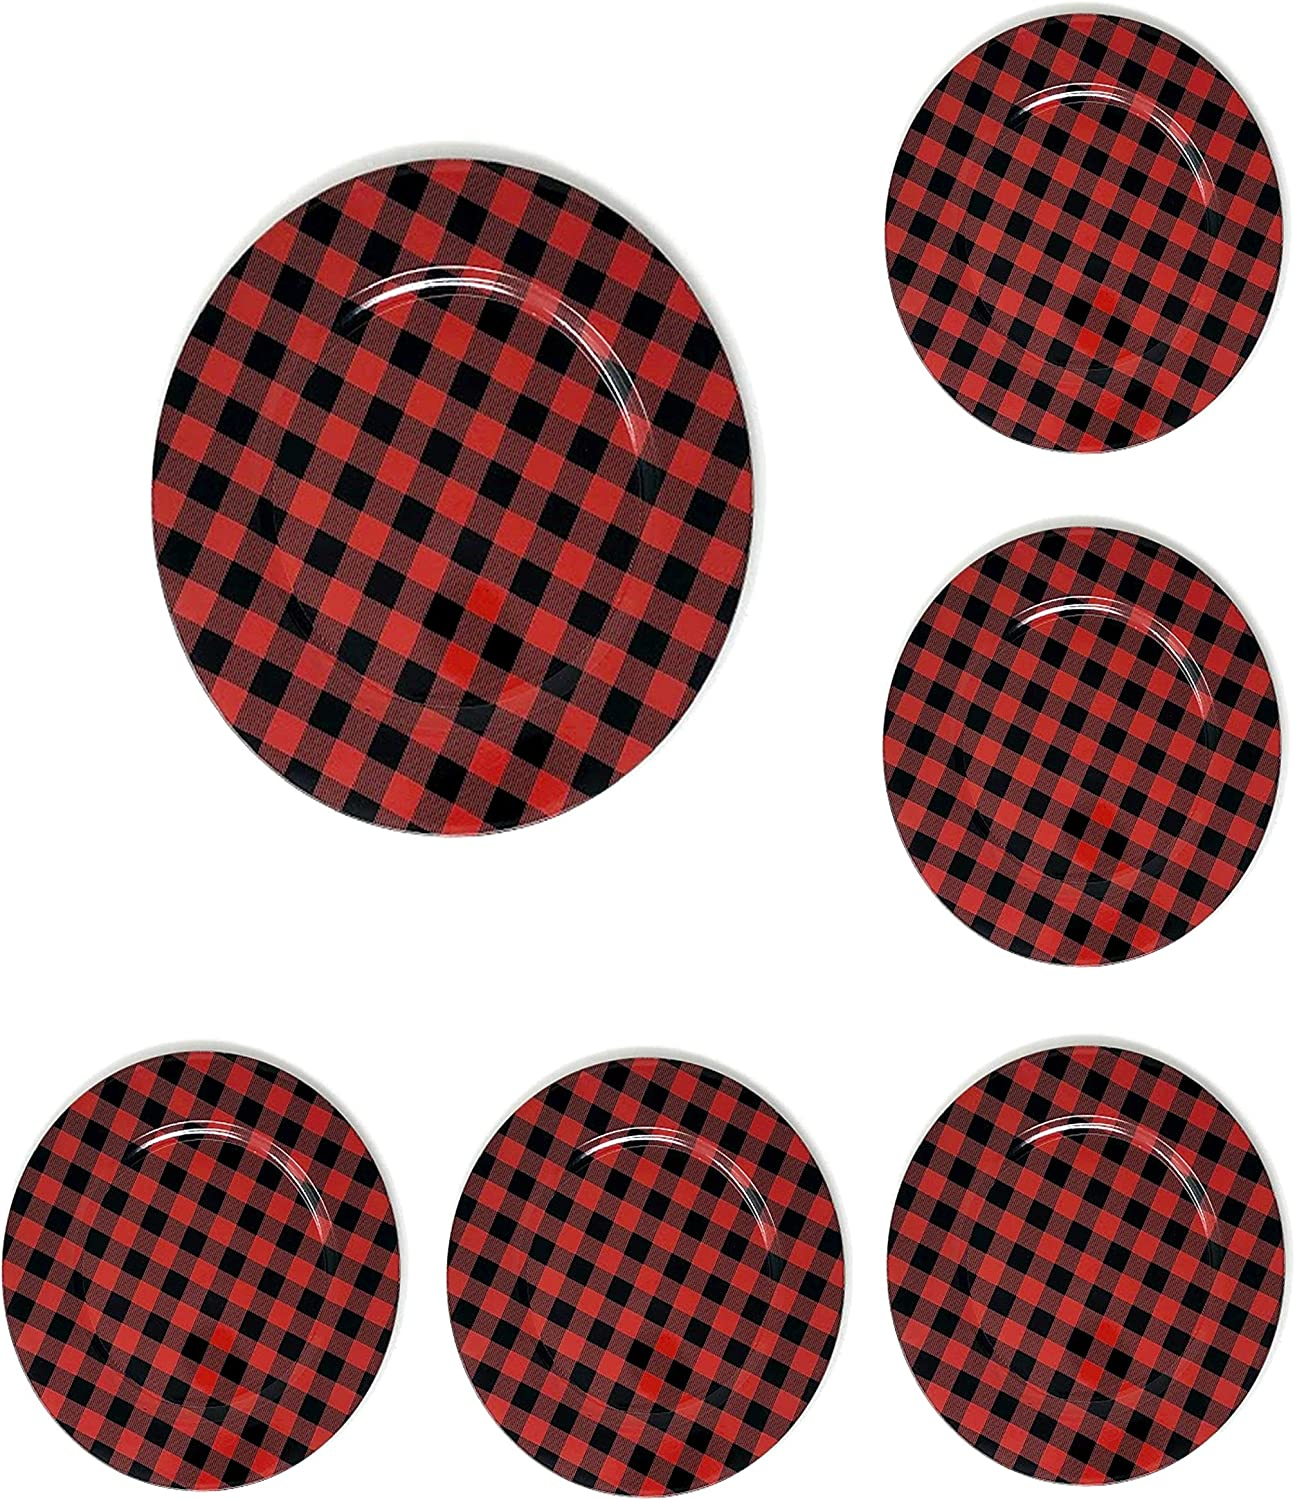 The Nifty Nook Round 13 Inch Plastic Charger Plates Farmhouse Decor Plaid - Set of 6 (Red & Black Plaid)